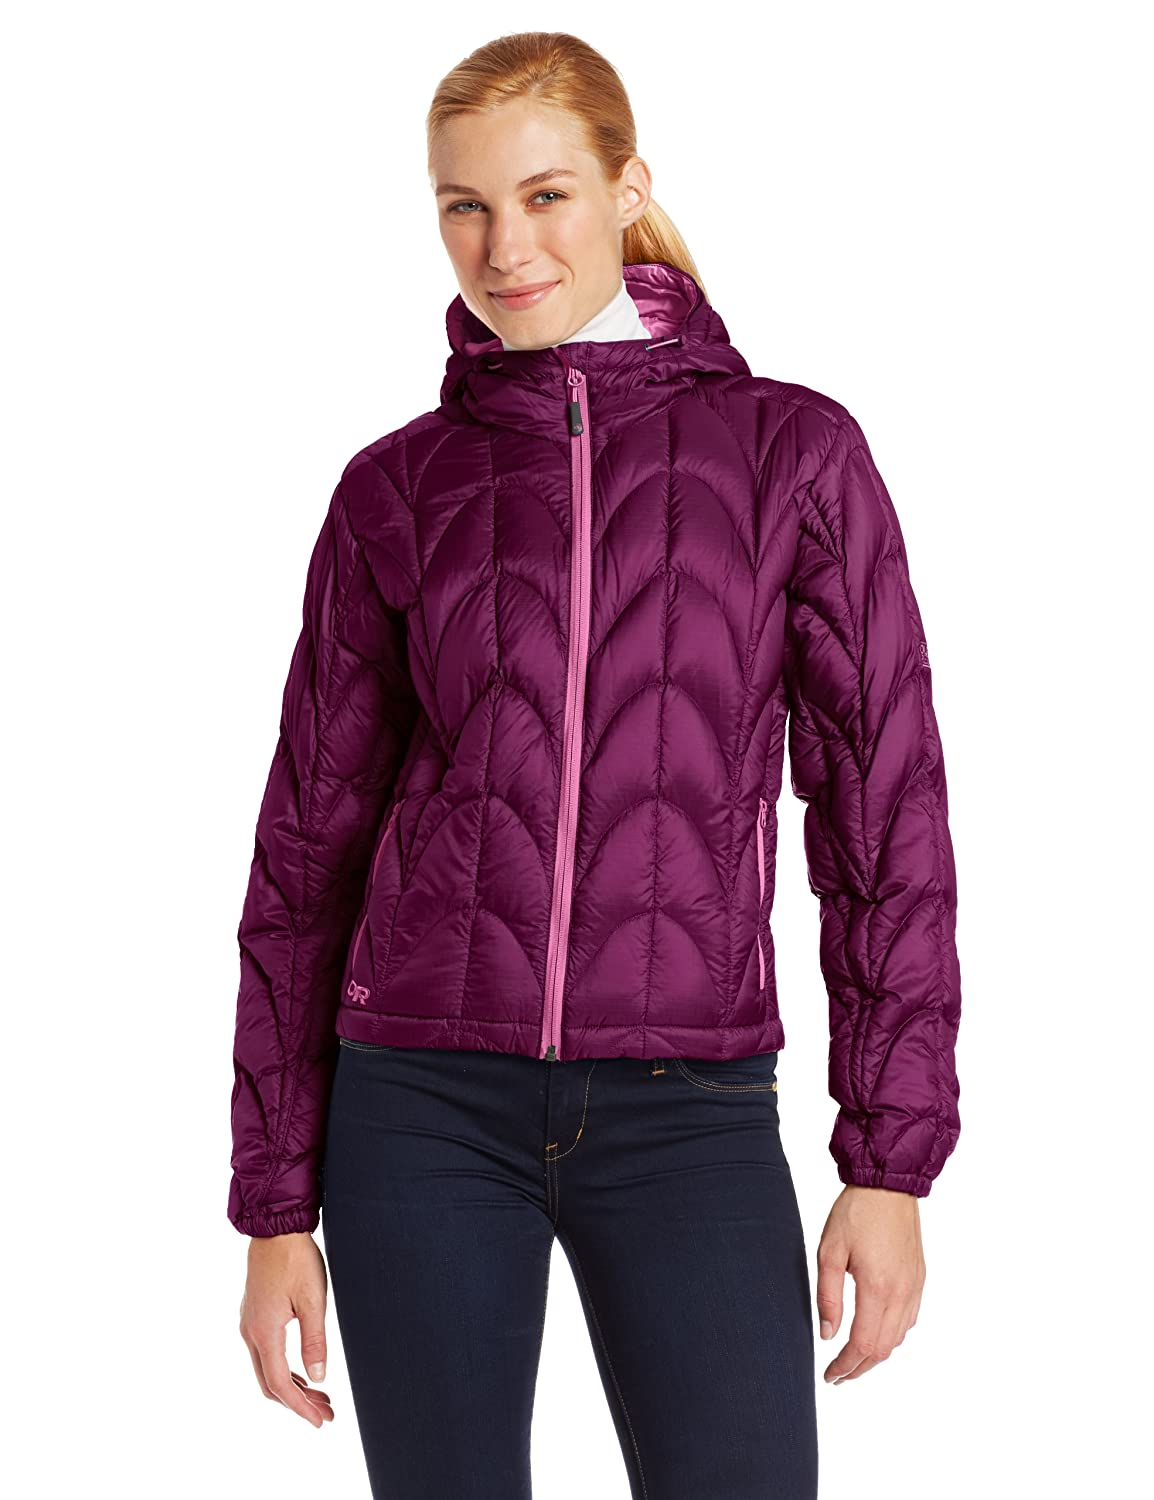 Outdoor Research Women's Aria Hoody - Size (Medium) Color (Orchid/Crocus) at Sears.com